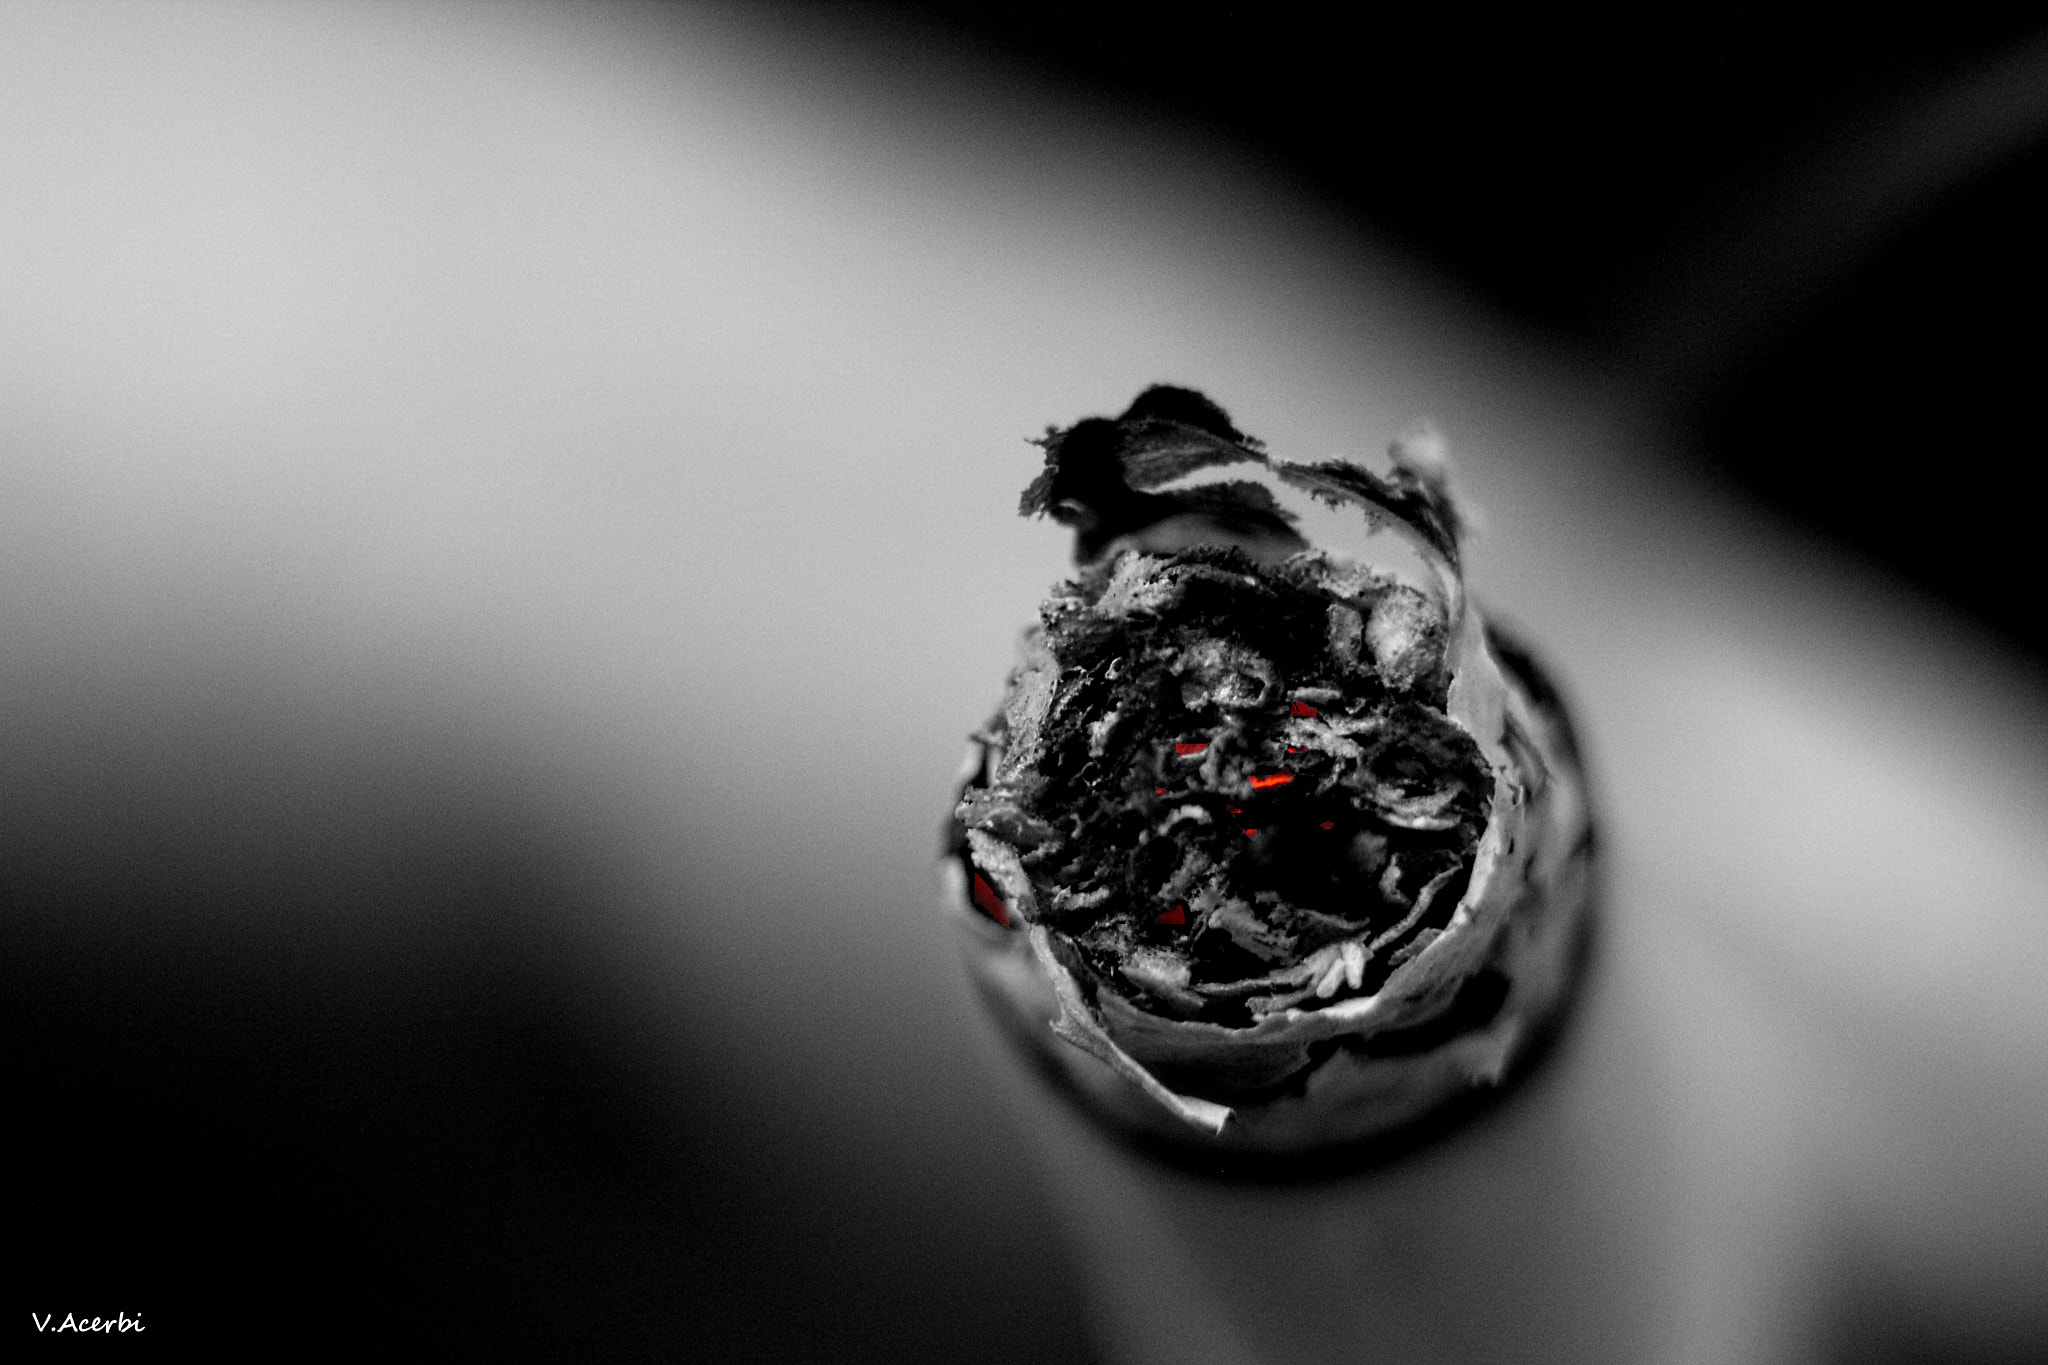 Photograph No smoking please by Valentina Acerbi  on 500px